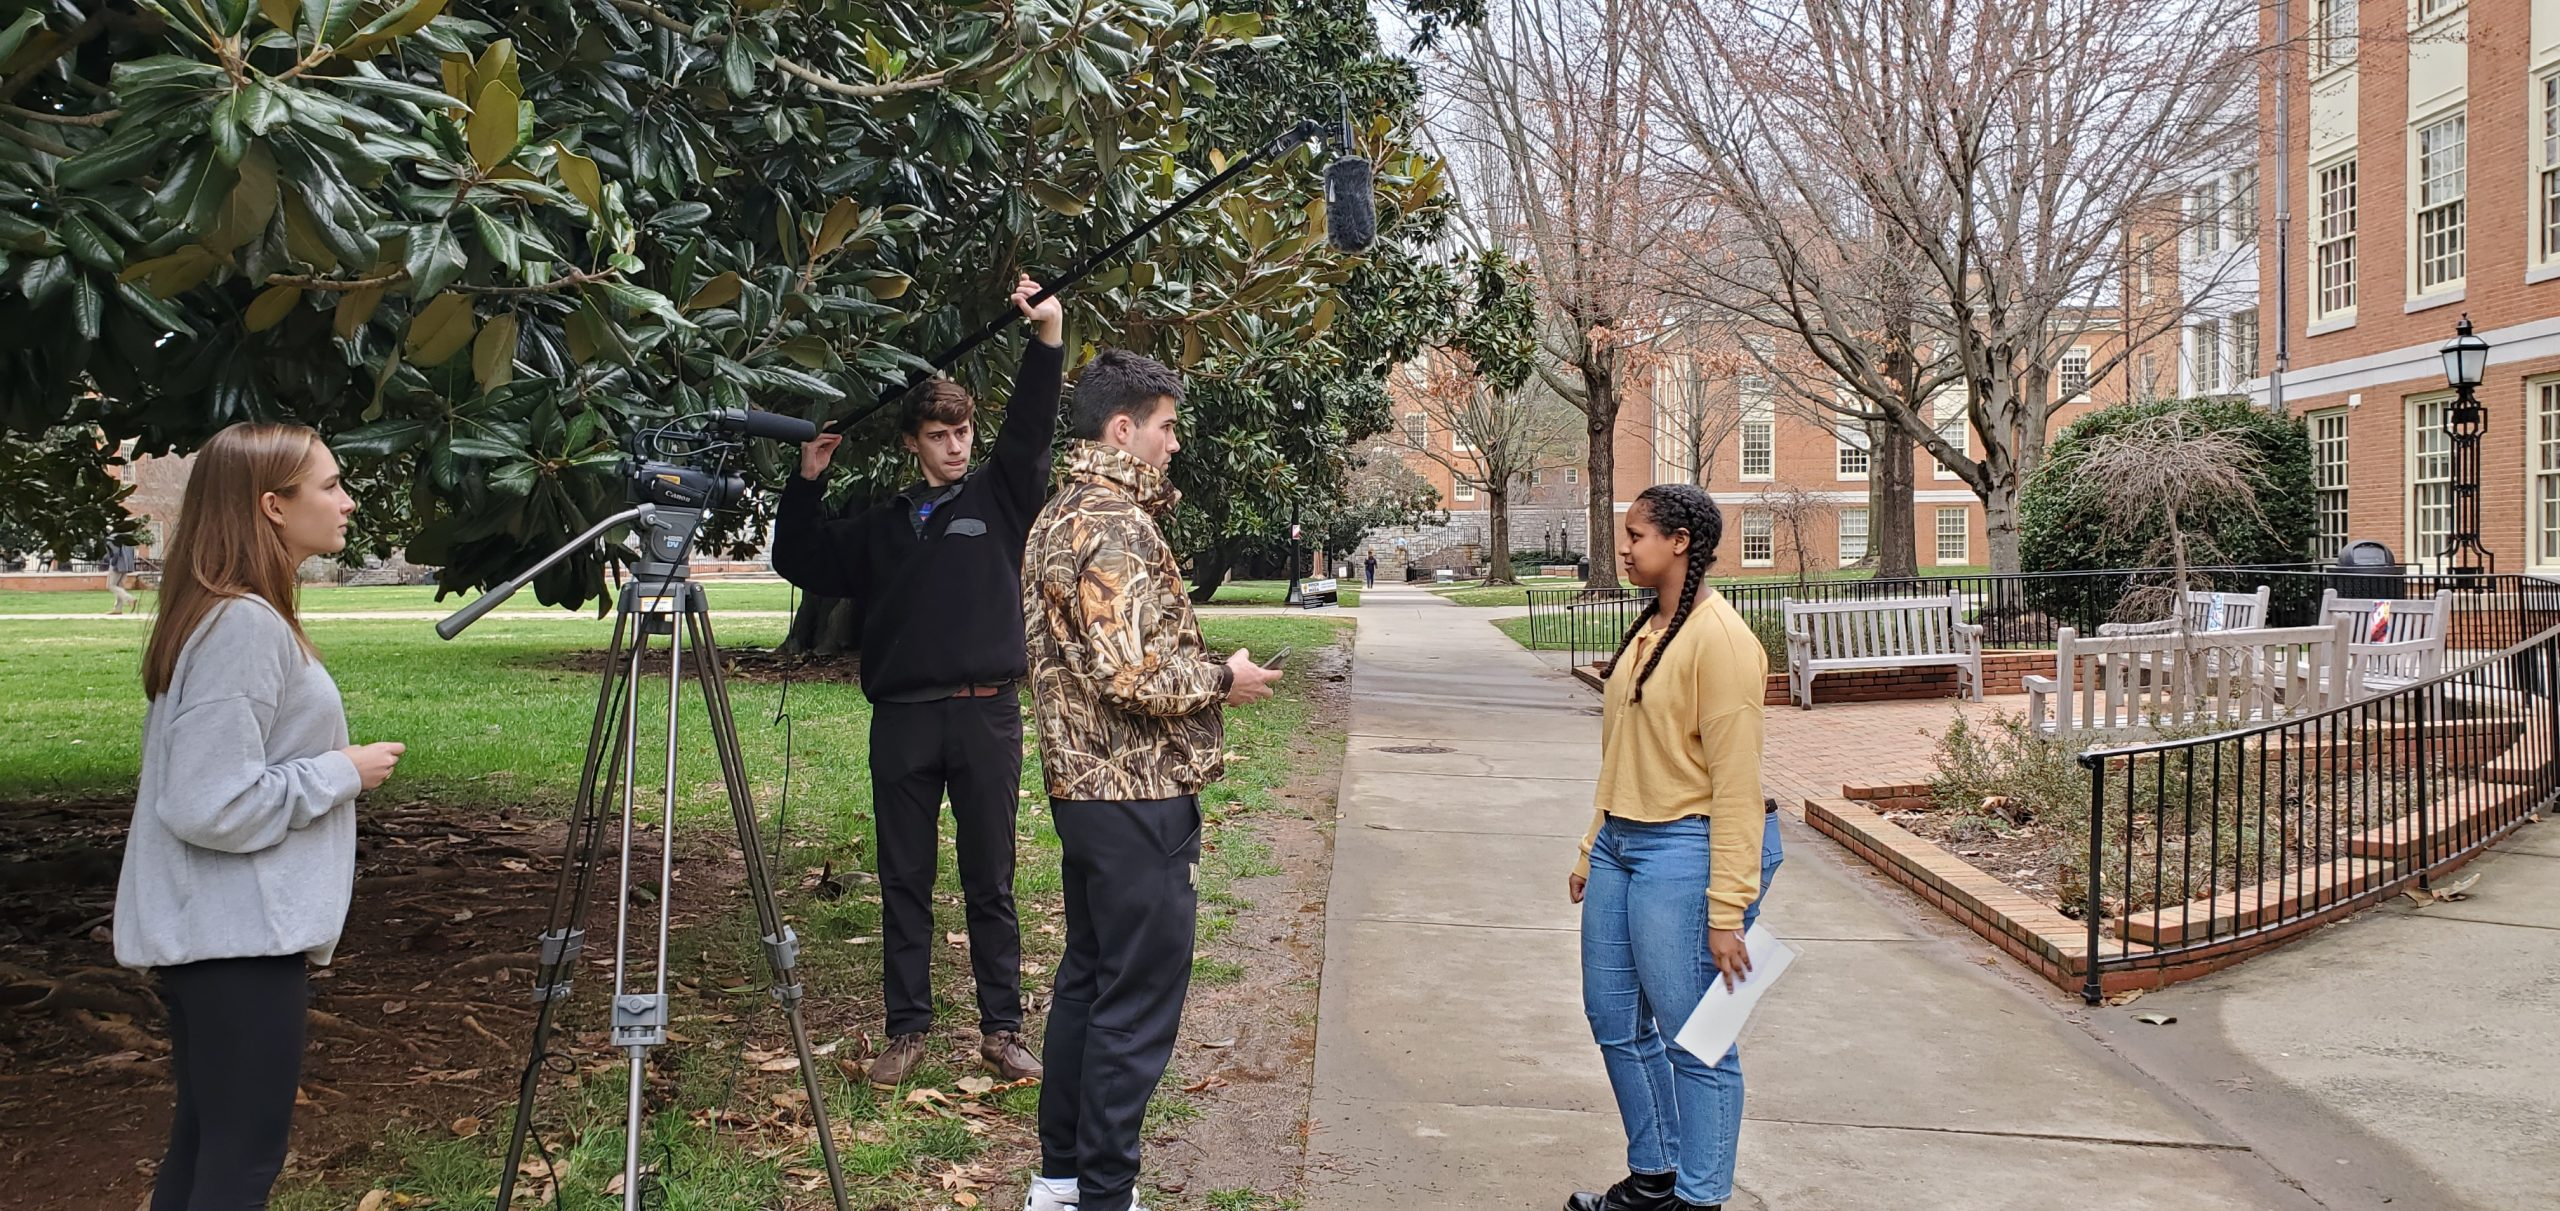 Students Preparing to film on the quad at WFU